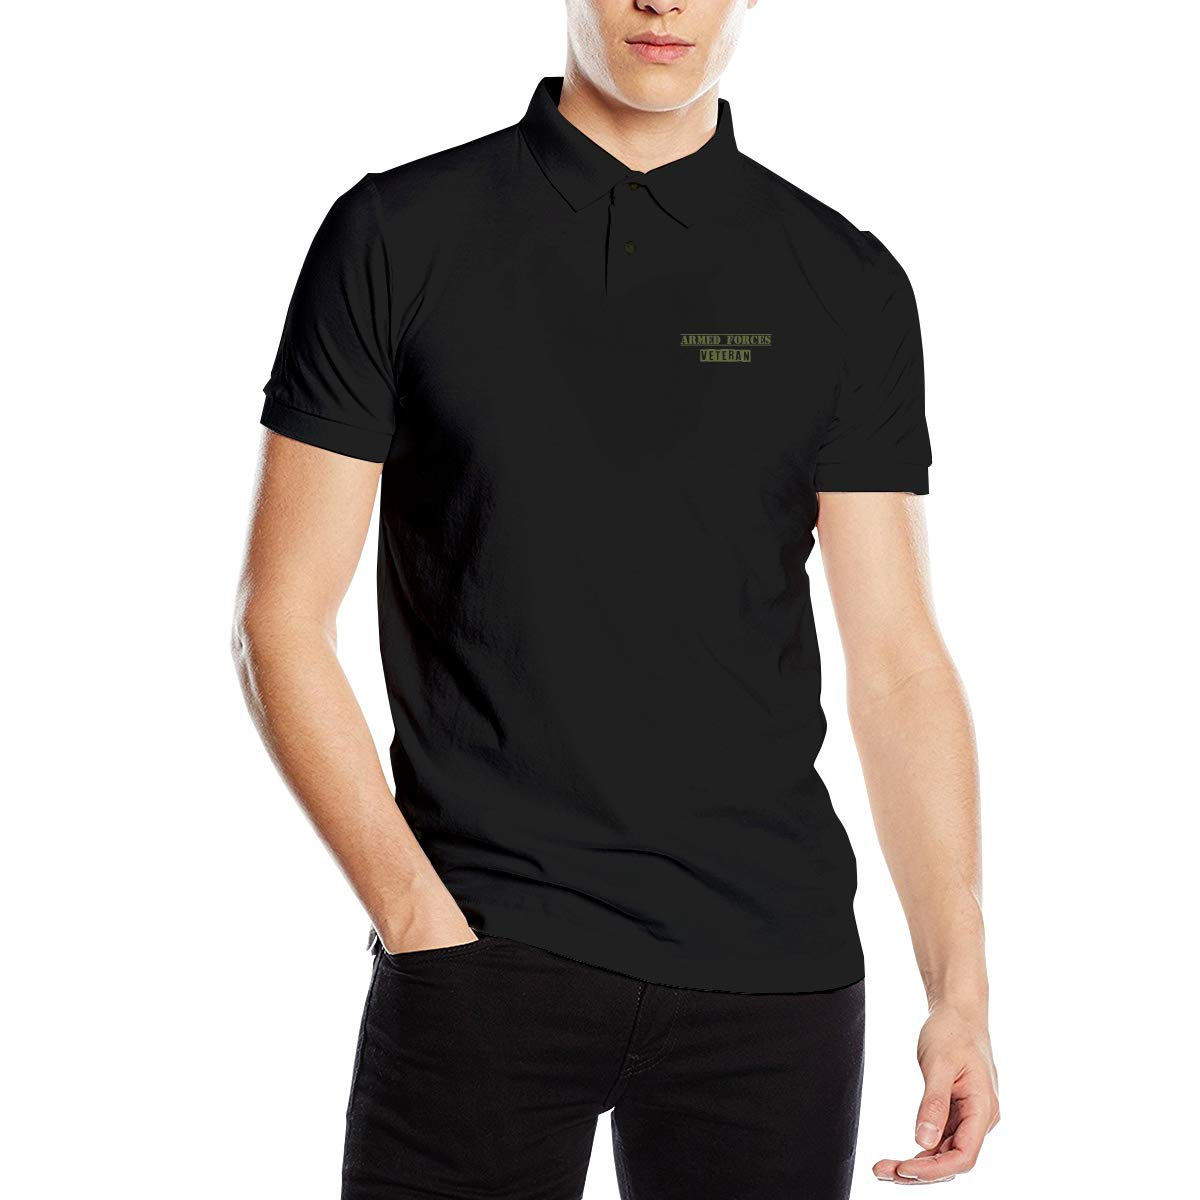 You Know And Good Armed Forces Veteran Mens Regular-Fit Cotton Polo Shirt Short Sleeve